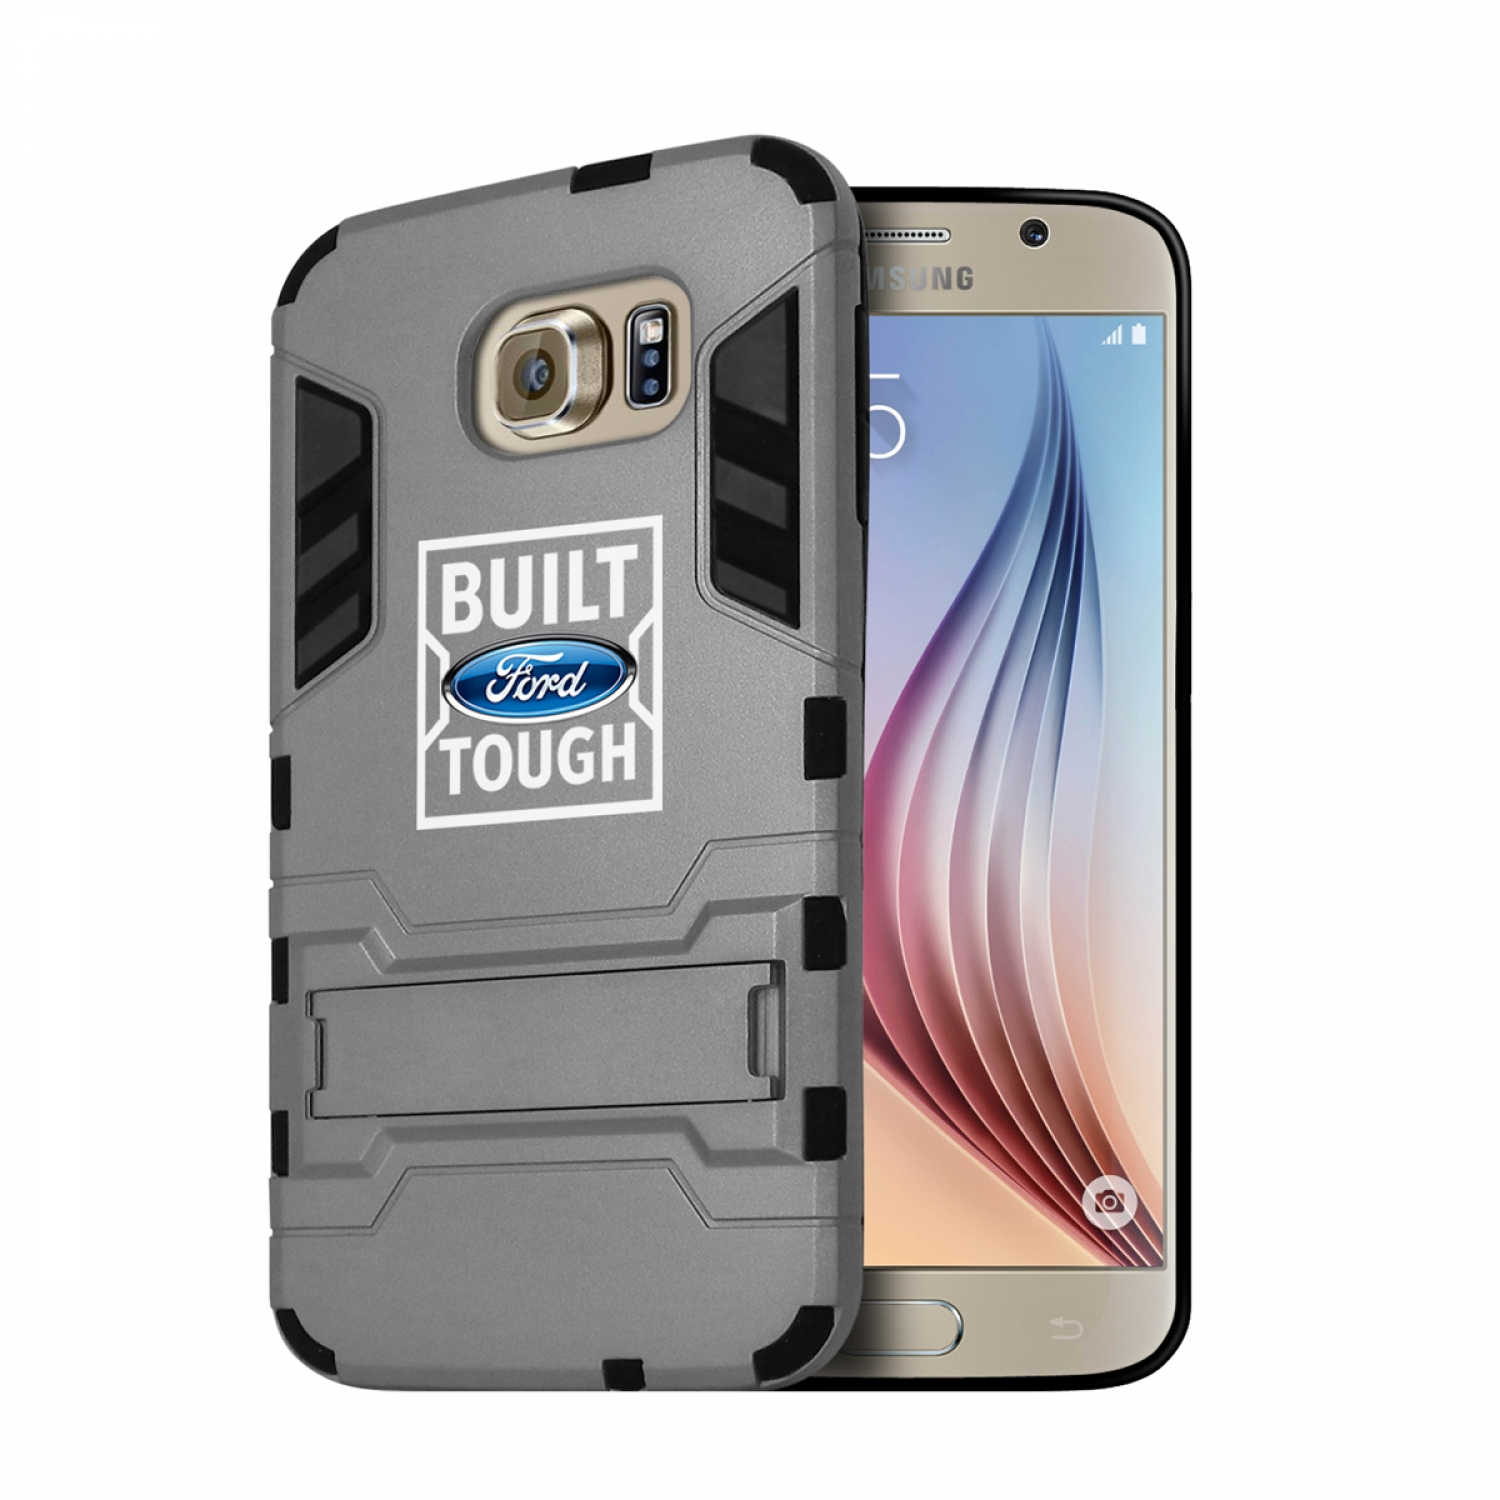 Ford Built Ford Tough Samsung Galaxy S6 Shockproof TPU ABS Hybrid Gray Phone Case